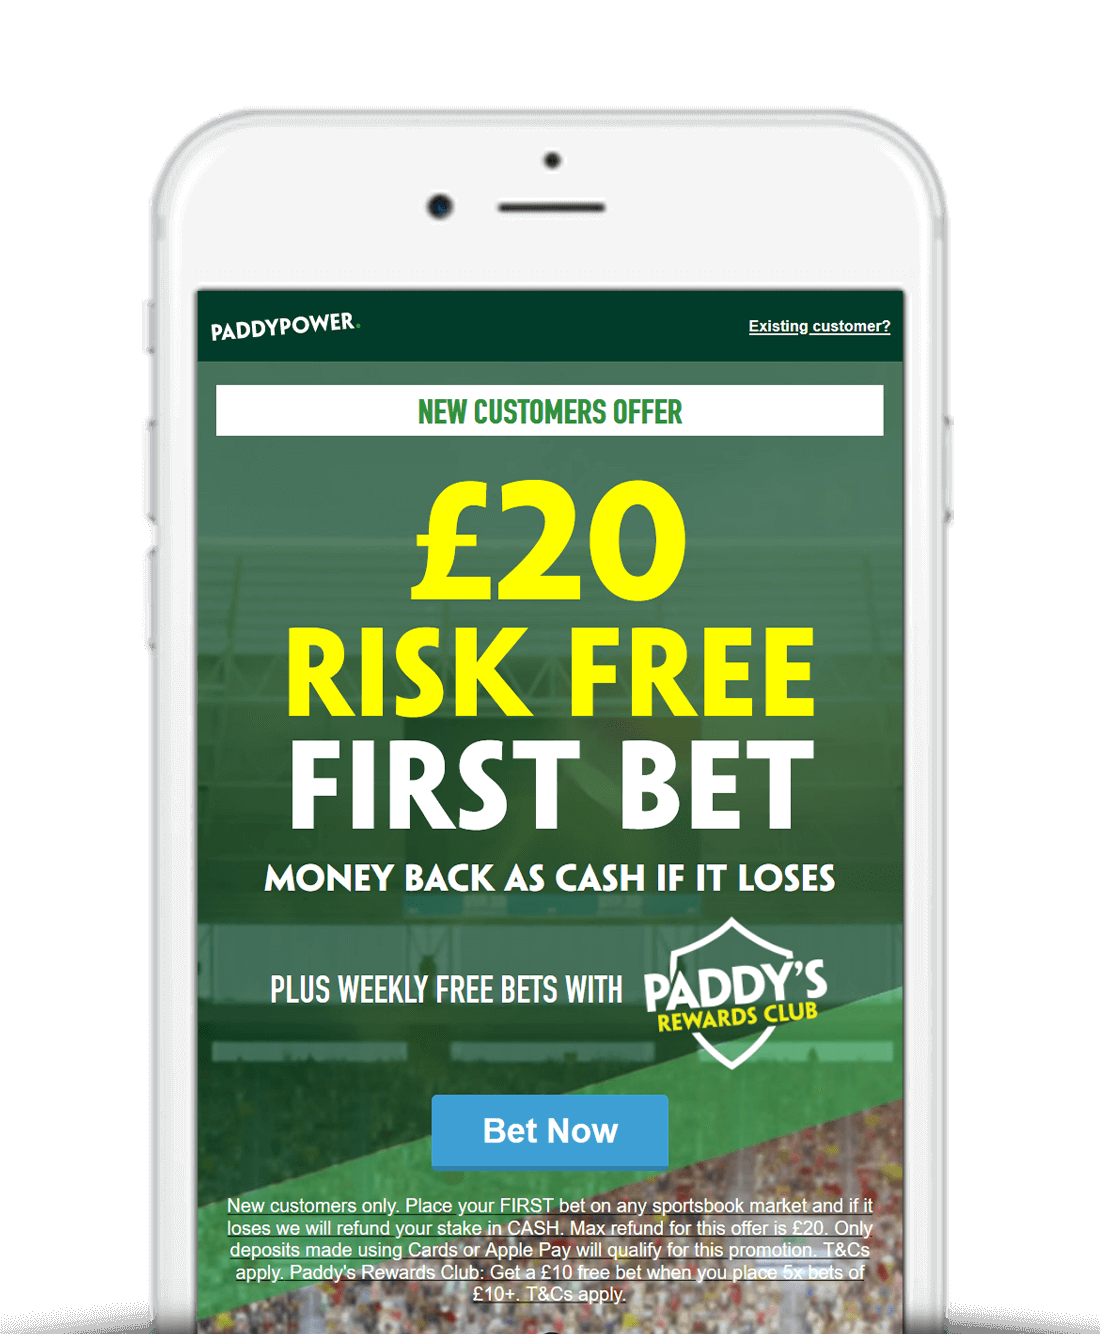 What Is The Paddy Power Sign Up Offer?